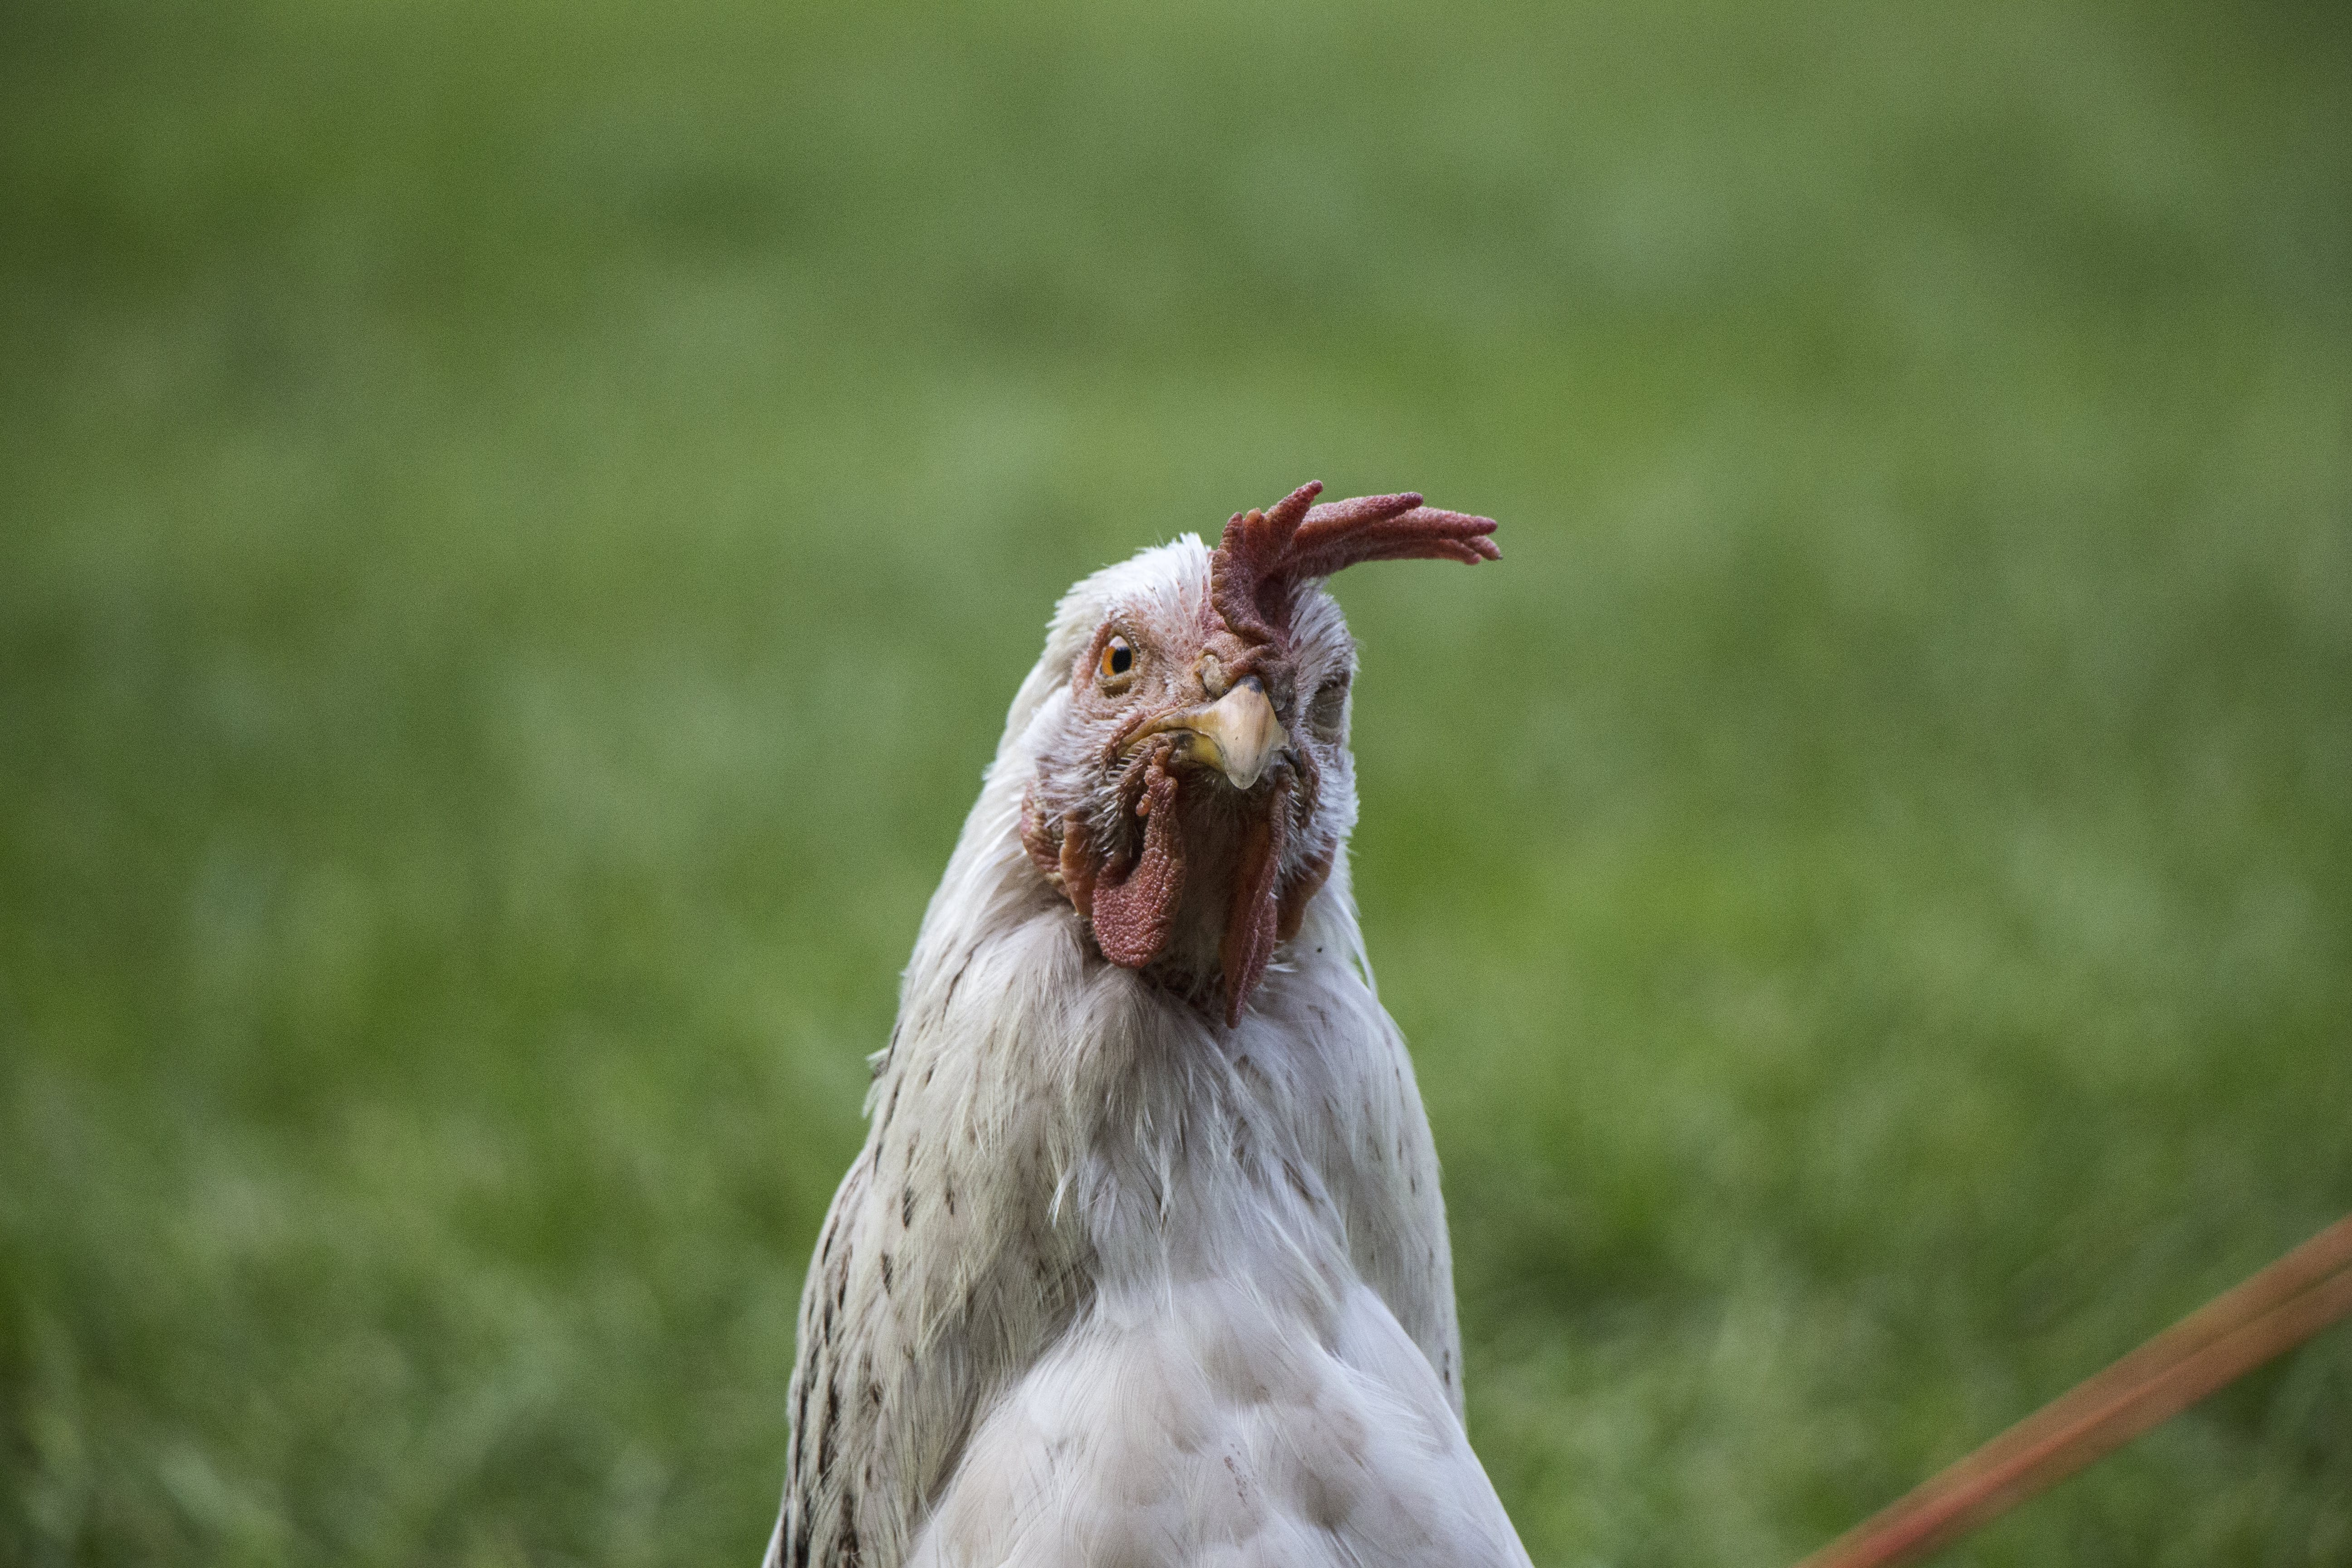 Selective Focus Photography of White Chicken